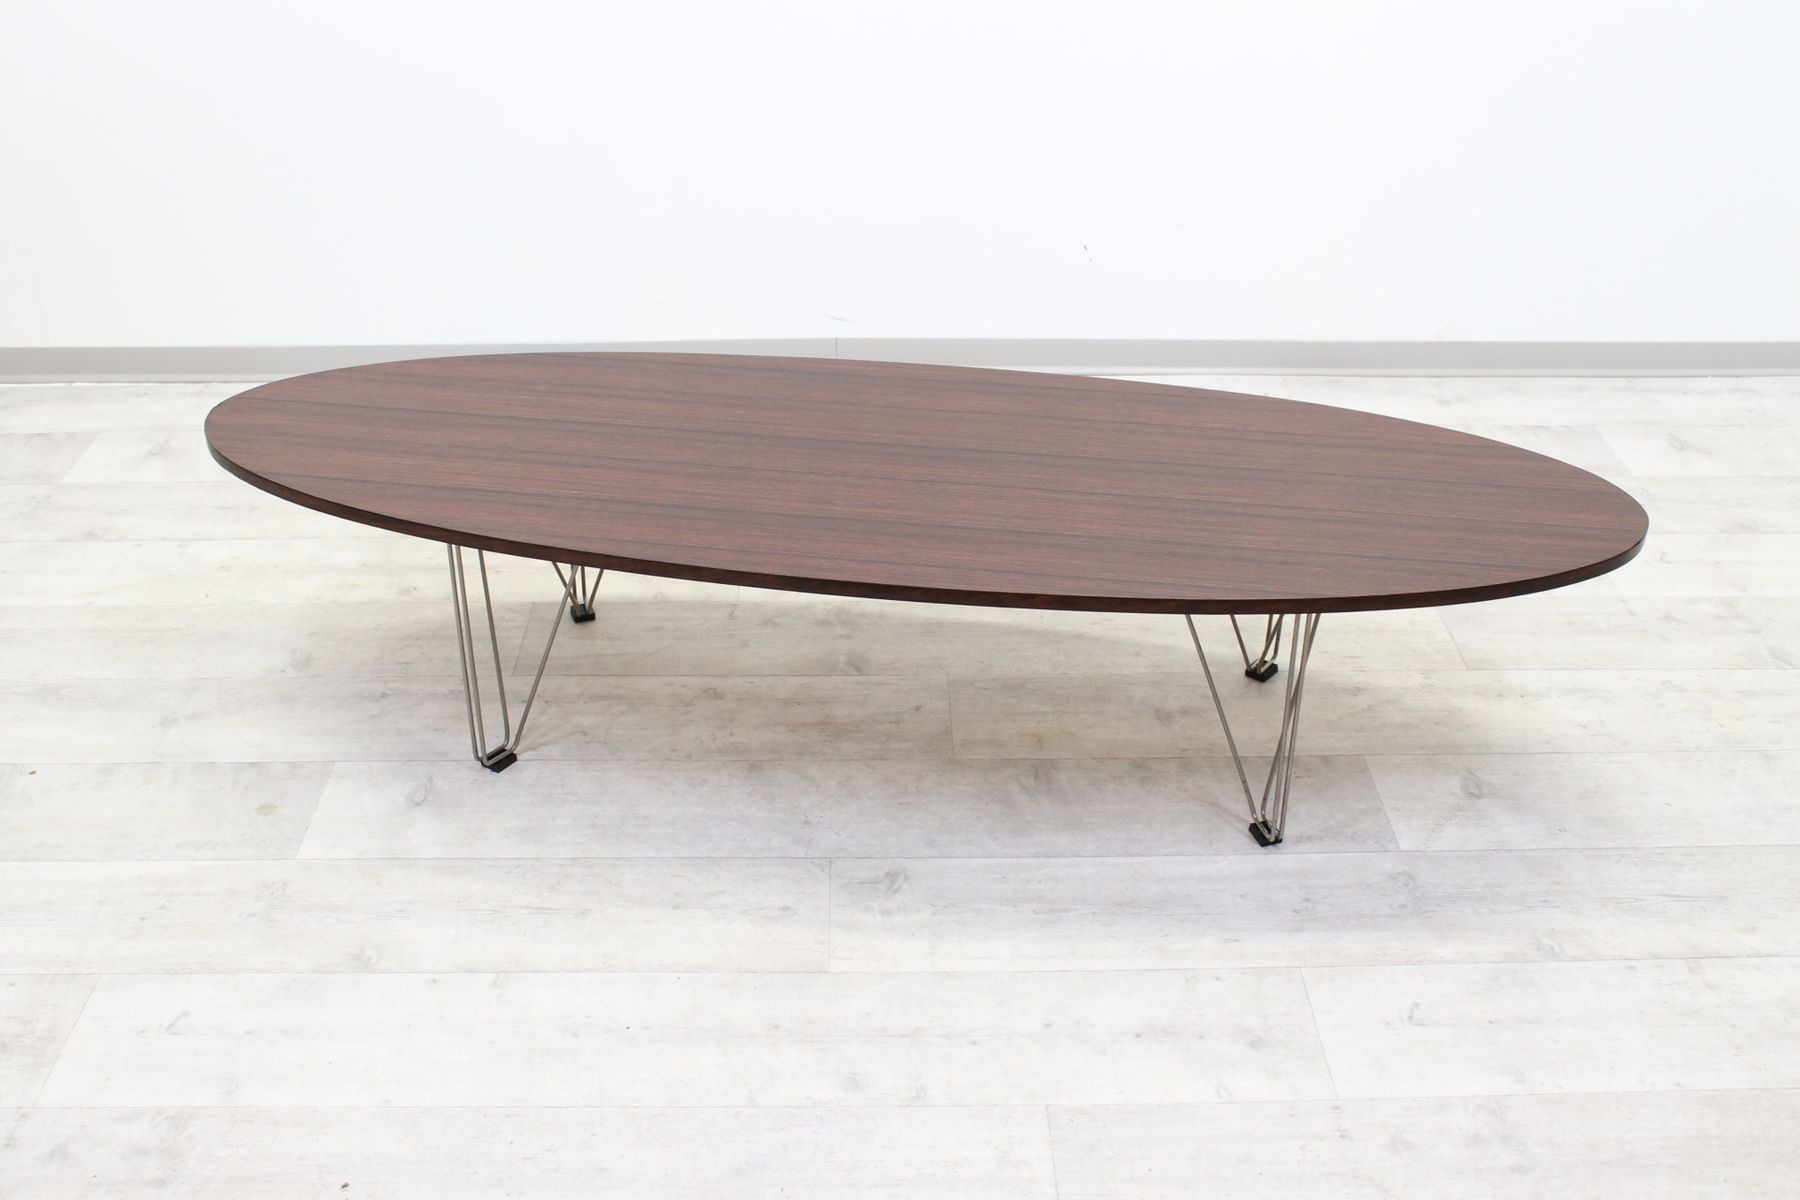 Vintage italian oval design coffee table 1970s for sale for Italian design coffee table